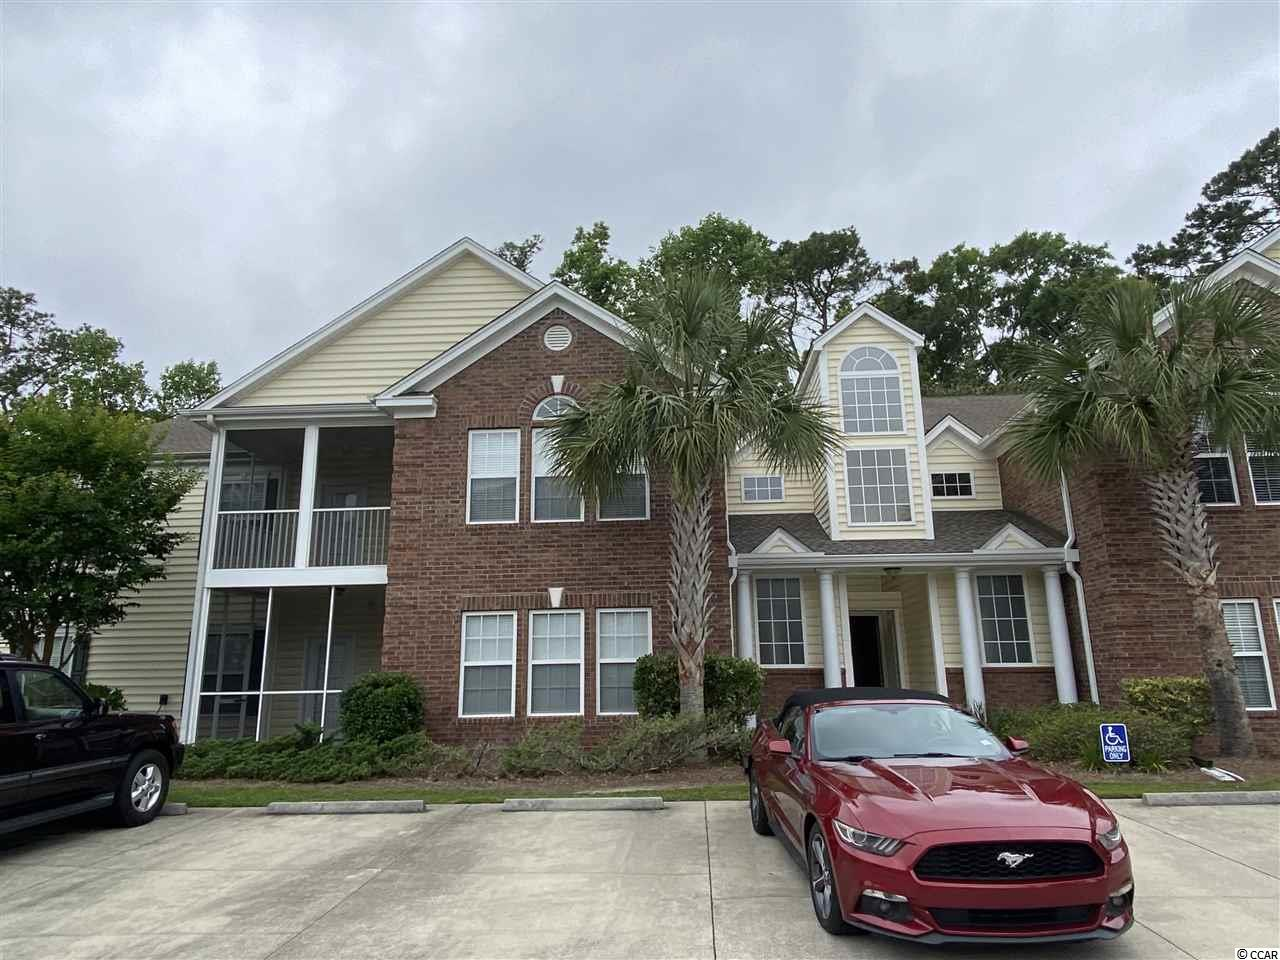 Wonderful opportunity to own property in the heart of Pawleys Island. 60 A Crane Drive is located just minutes from the beach and local stores. This 3 Bedroom 2 bathroom condo is just a short walk to the community pool. Pawleys Island is centrally located between Myrtle Beach and Charleston.